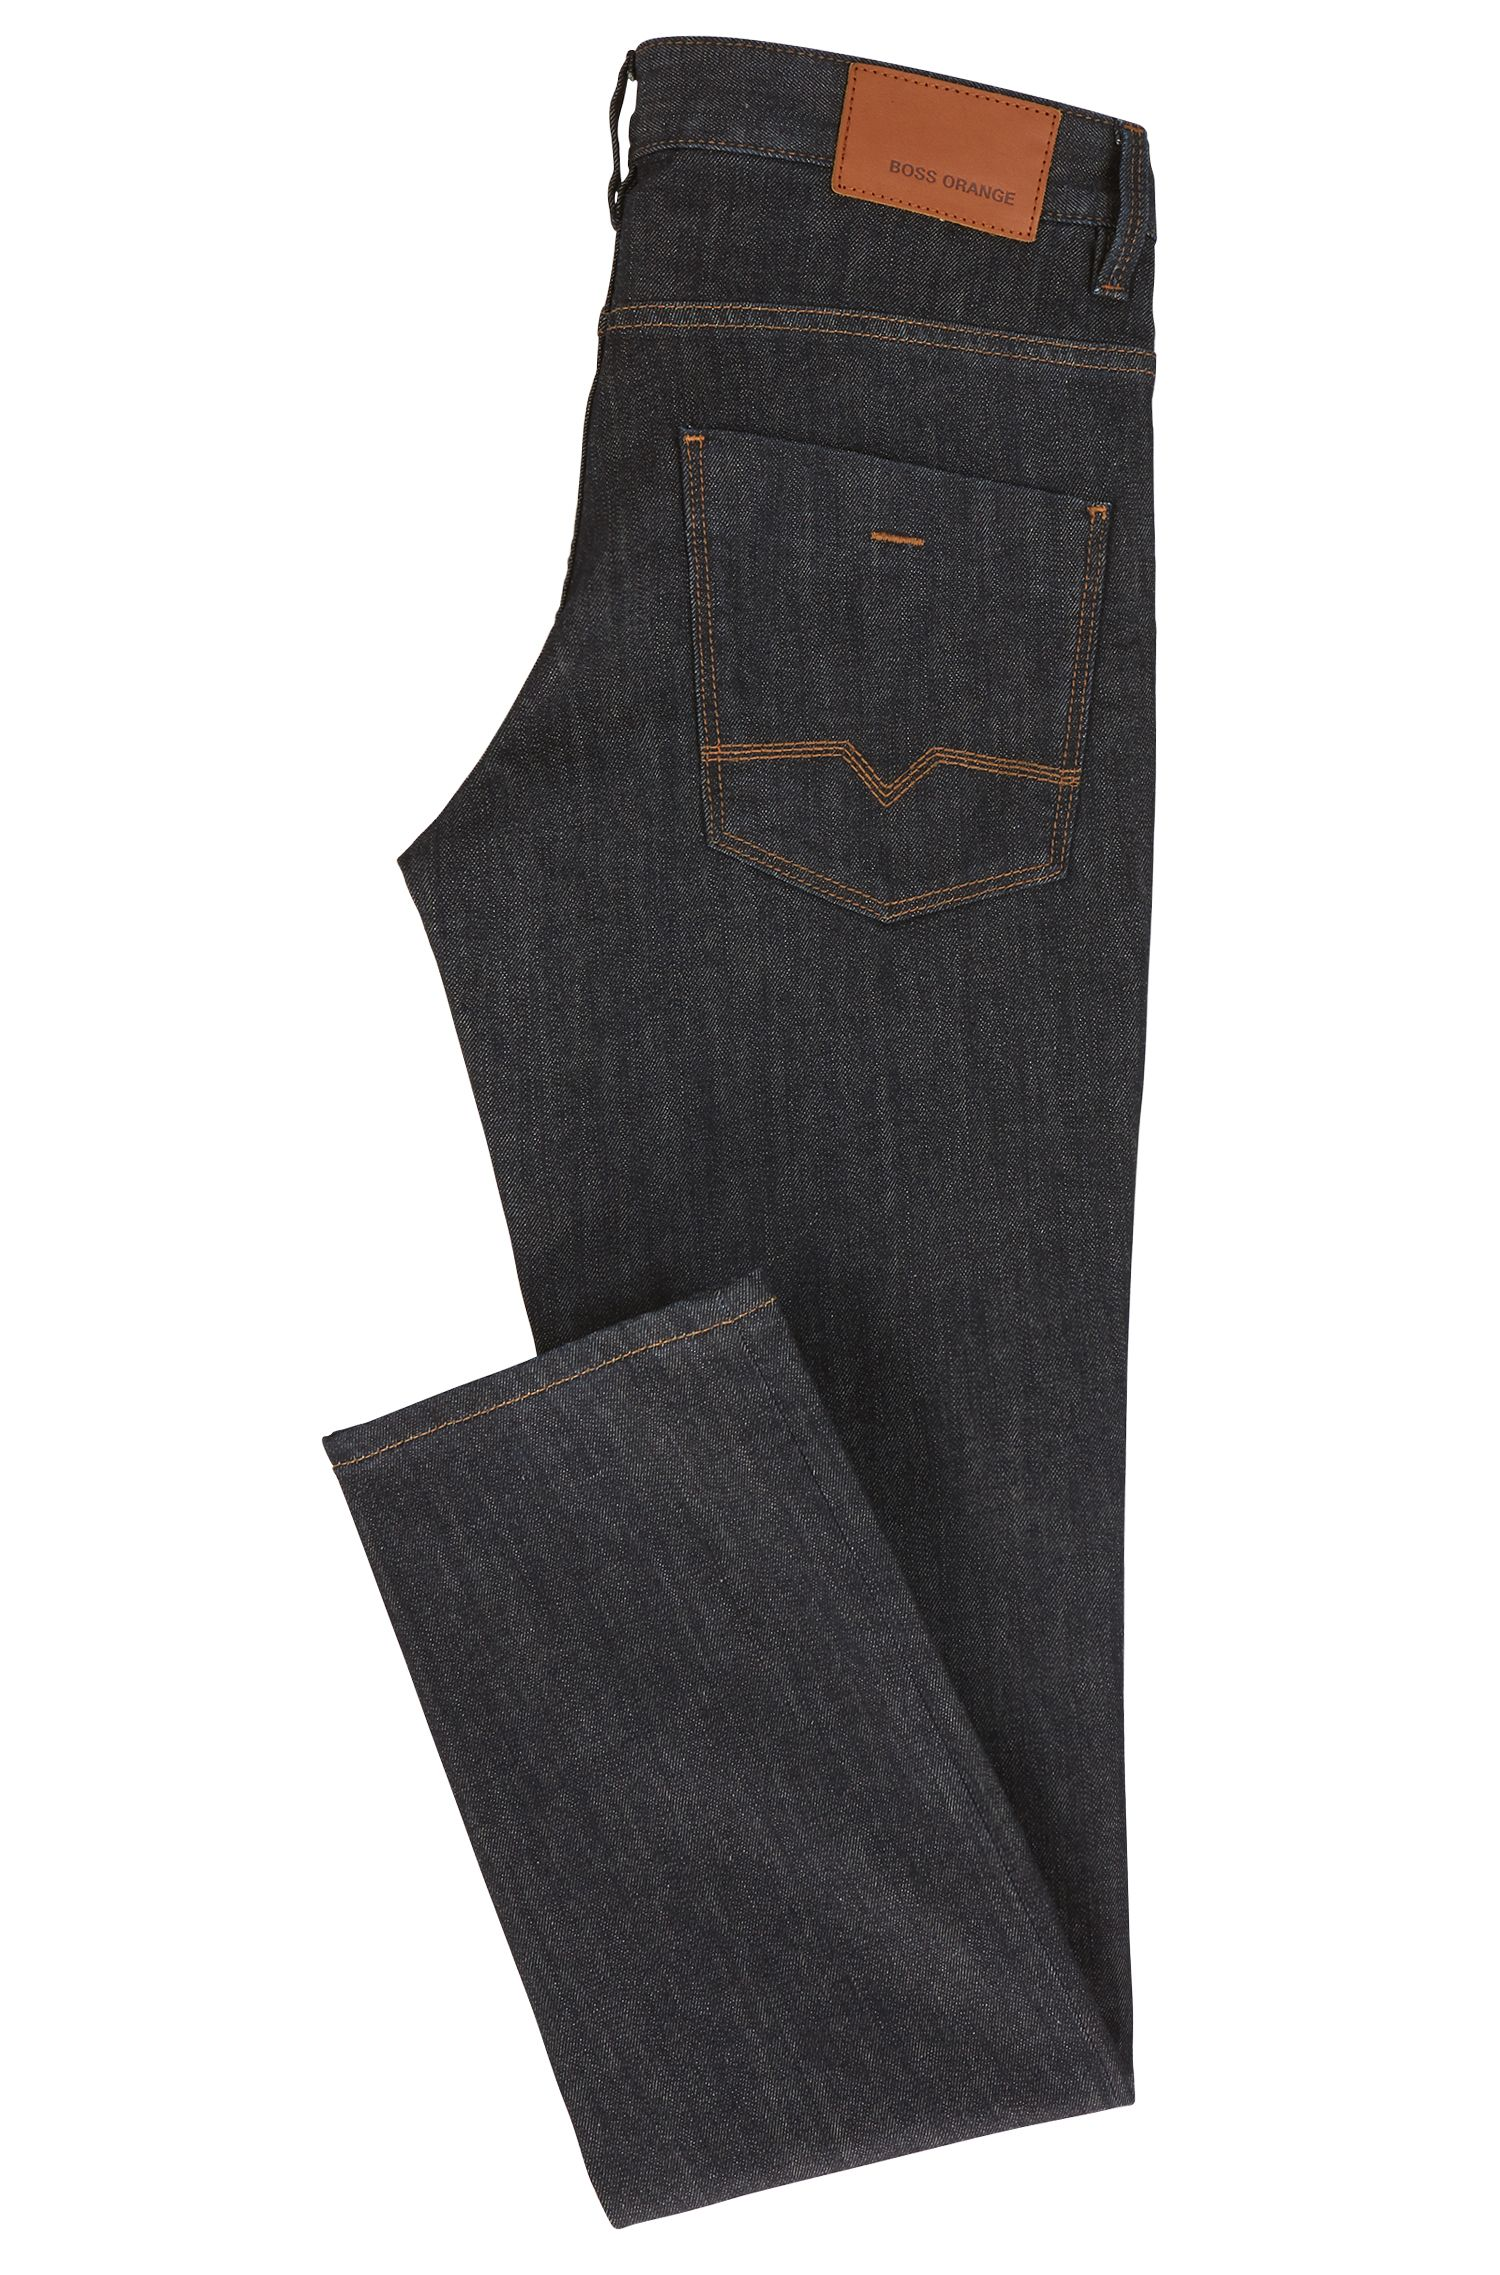 Jeans Slim Fit en coton stretch : « Orange63 »